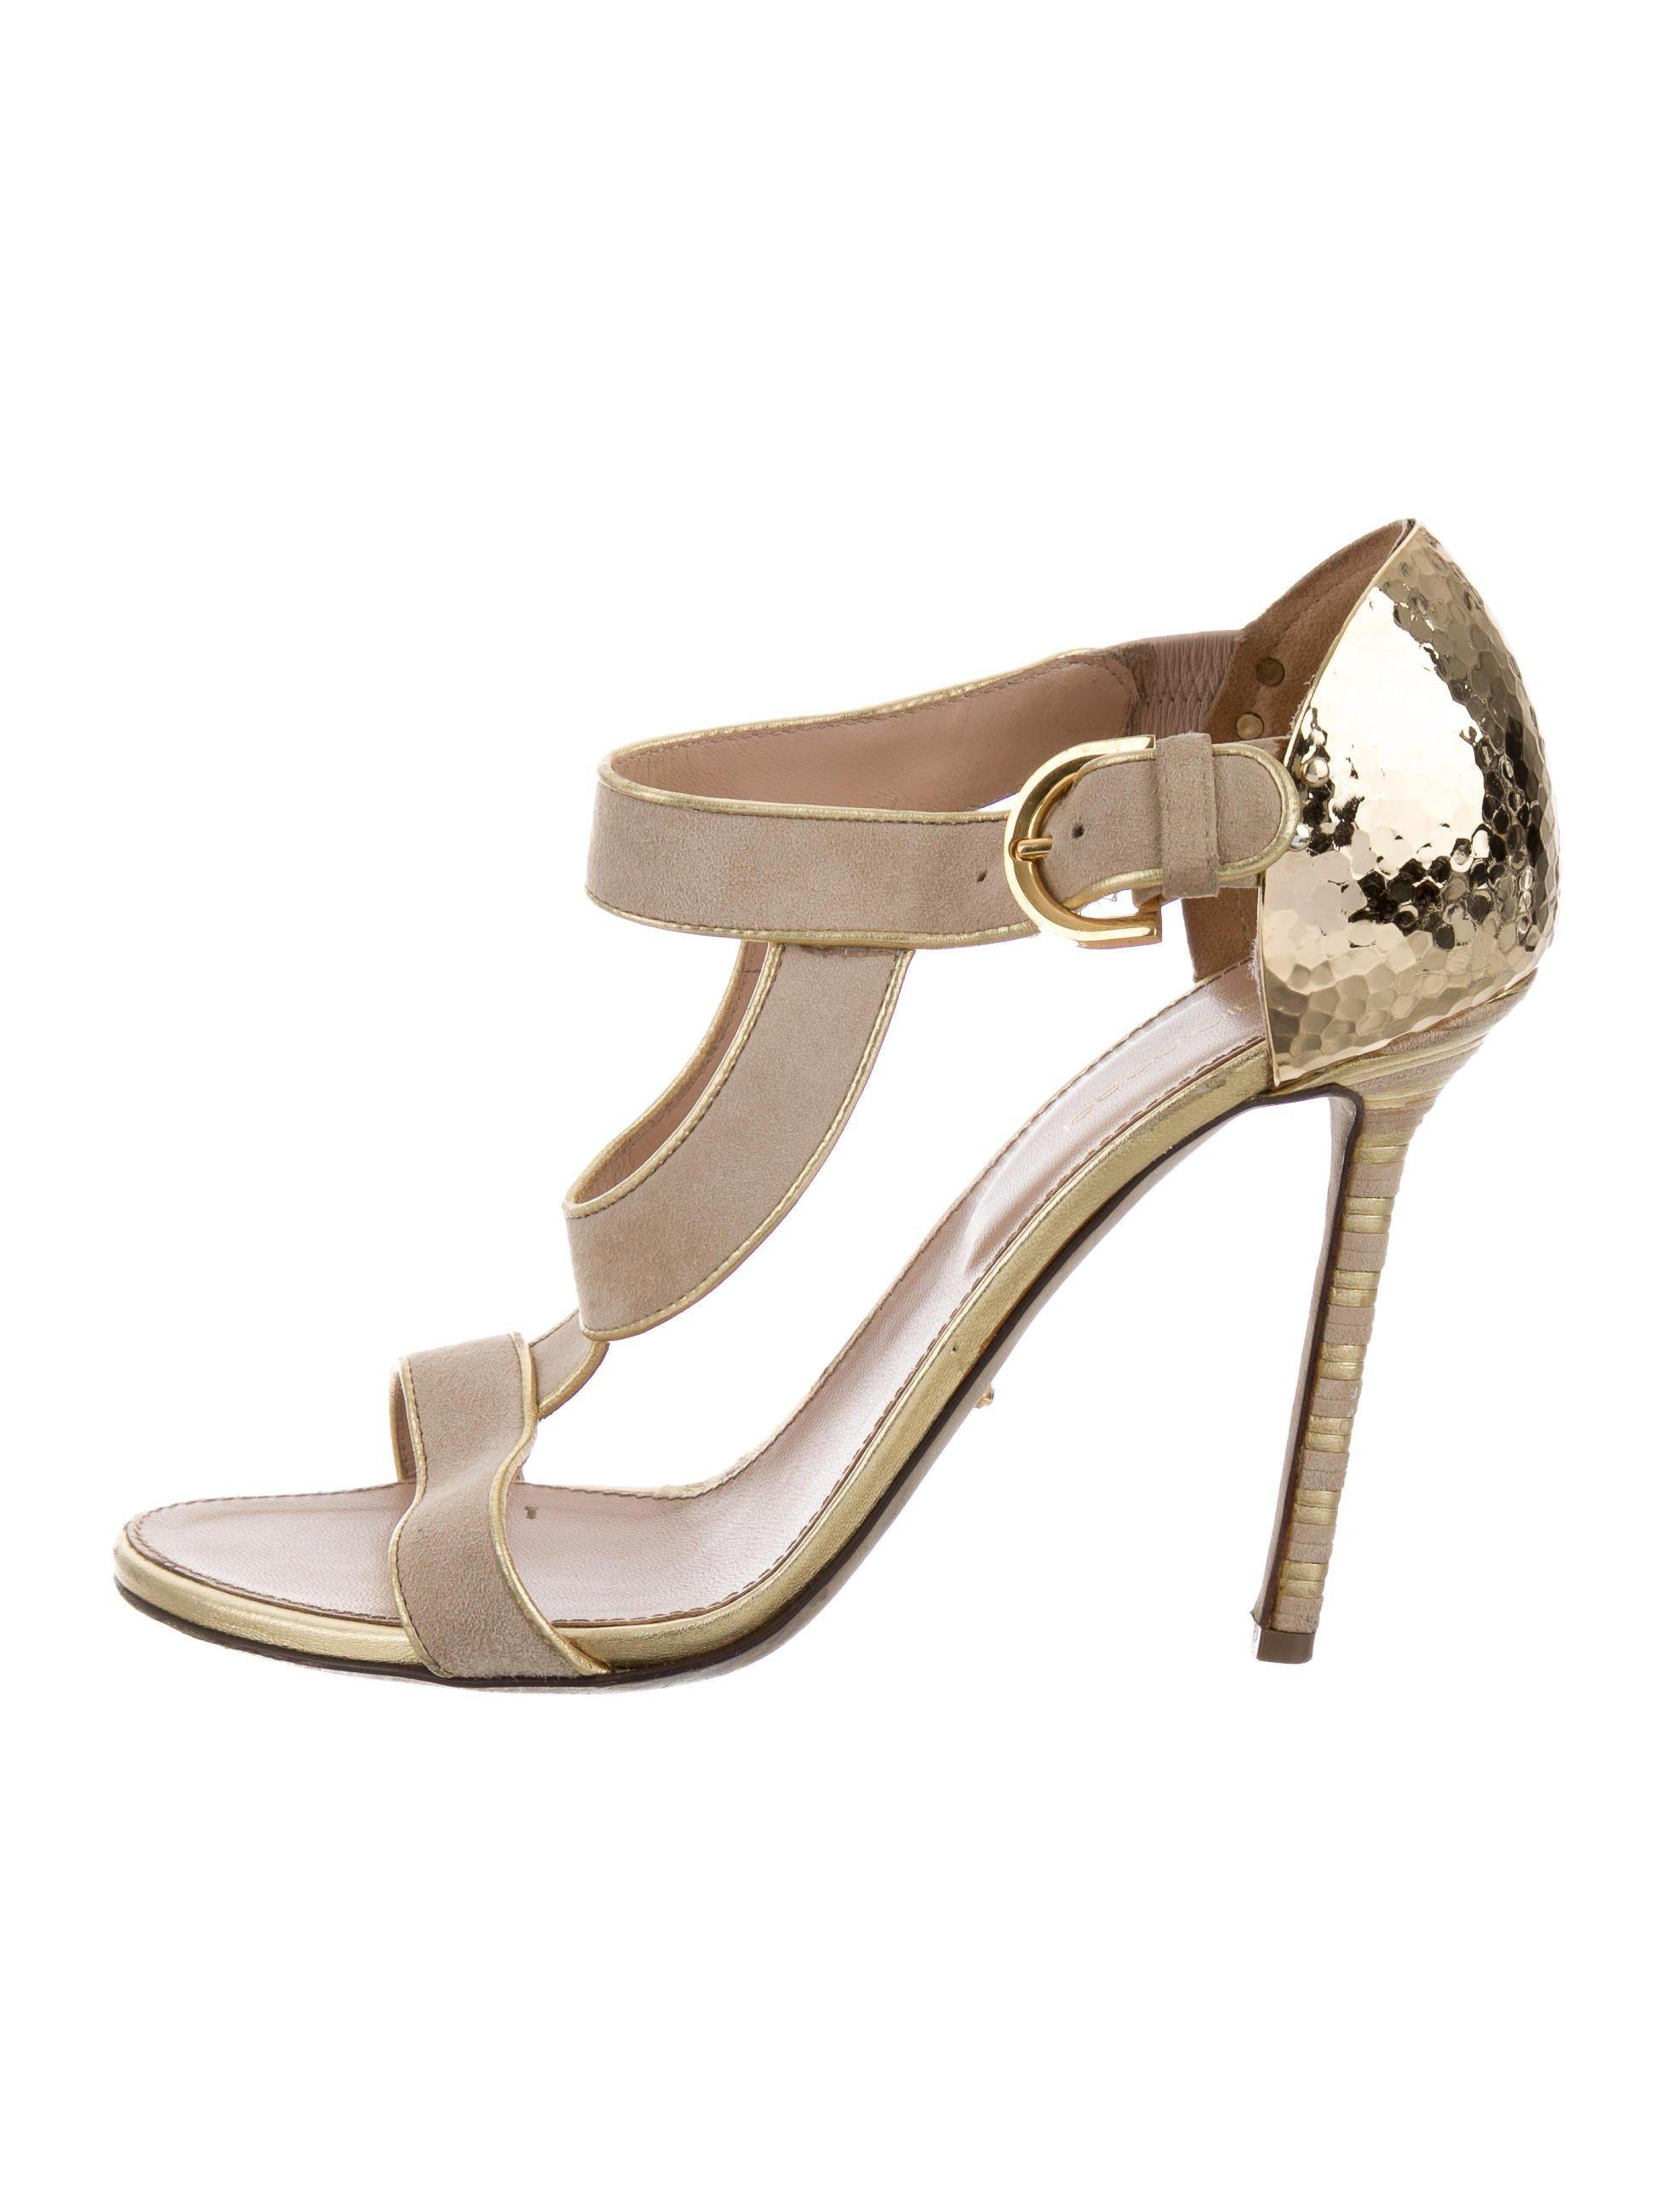 Sergio Rossi Metallic Leather-Trimmed Suede Sandals cheap shop for find great for sale shopping online clearance for nice cheap online WezkCpcer